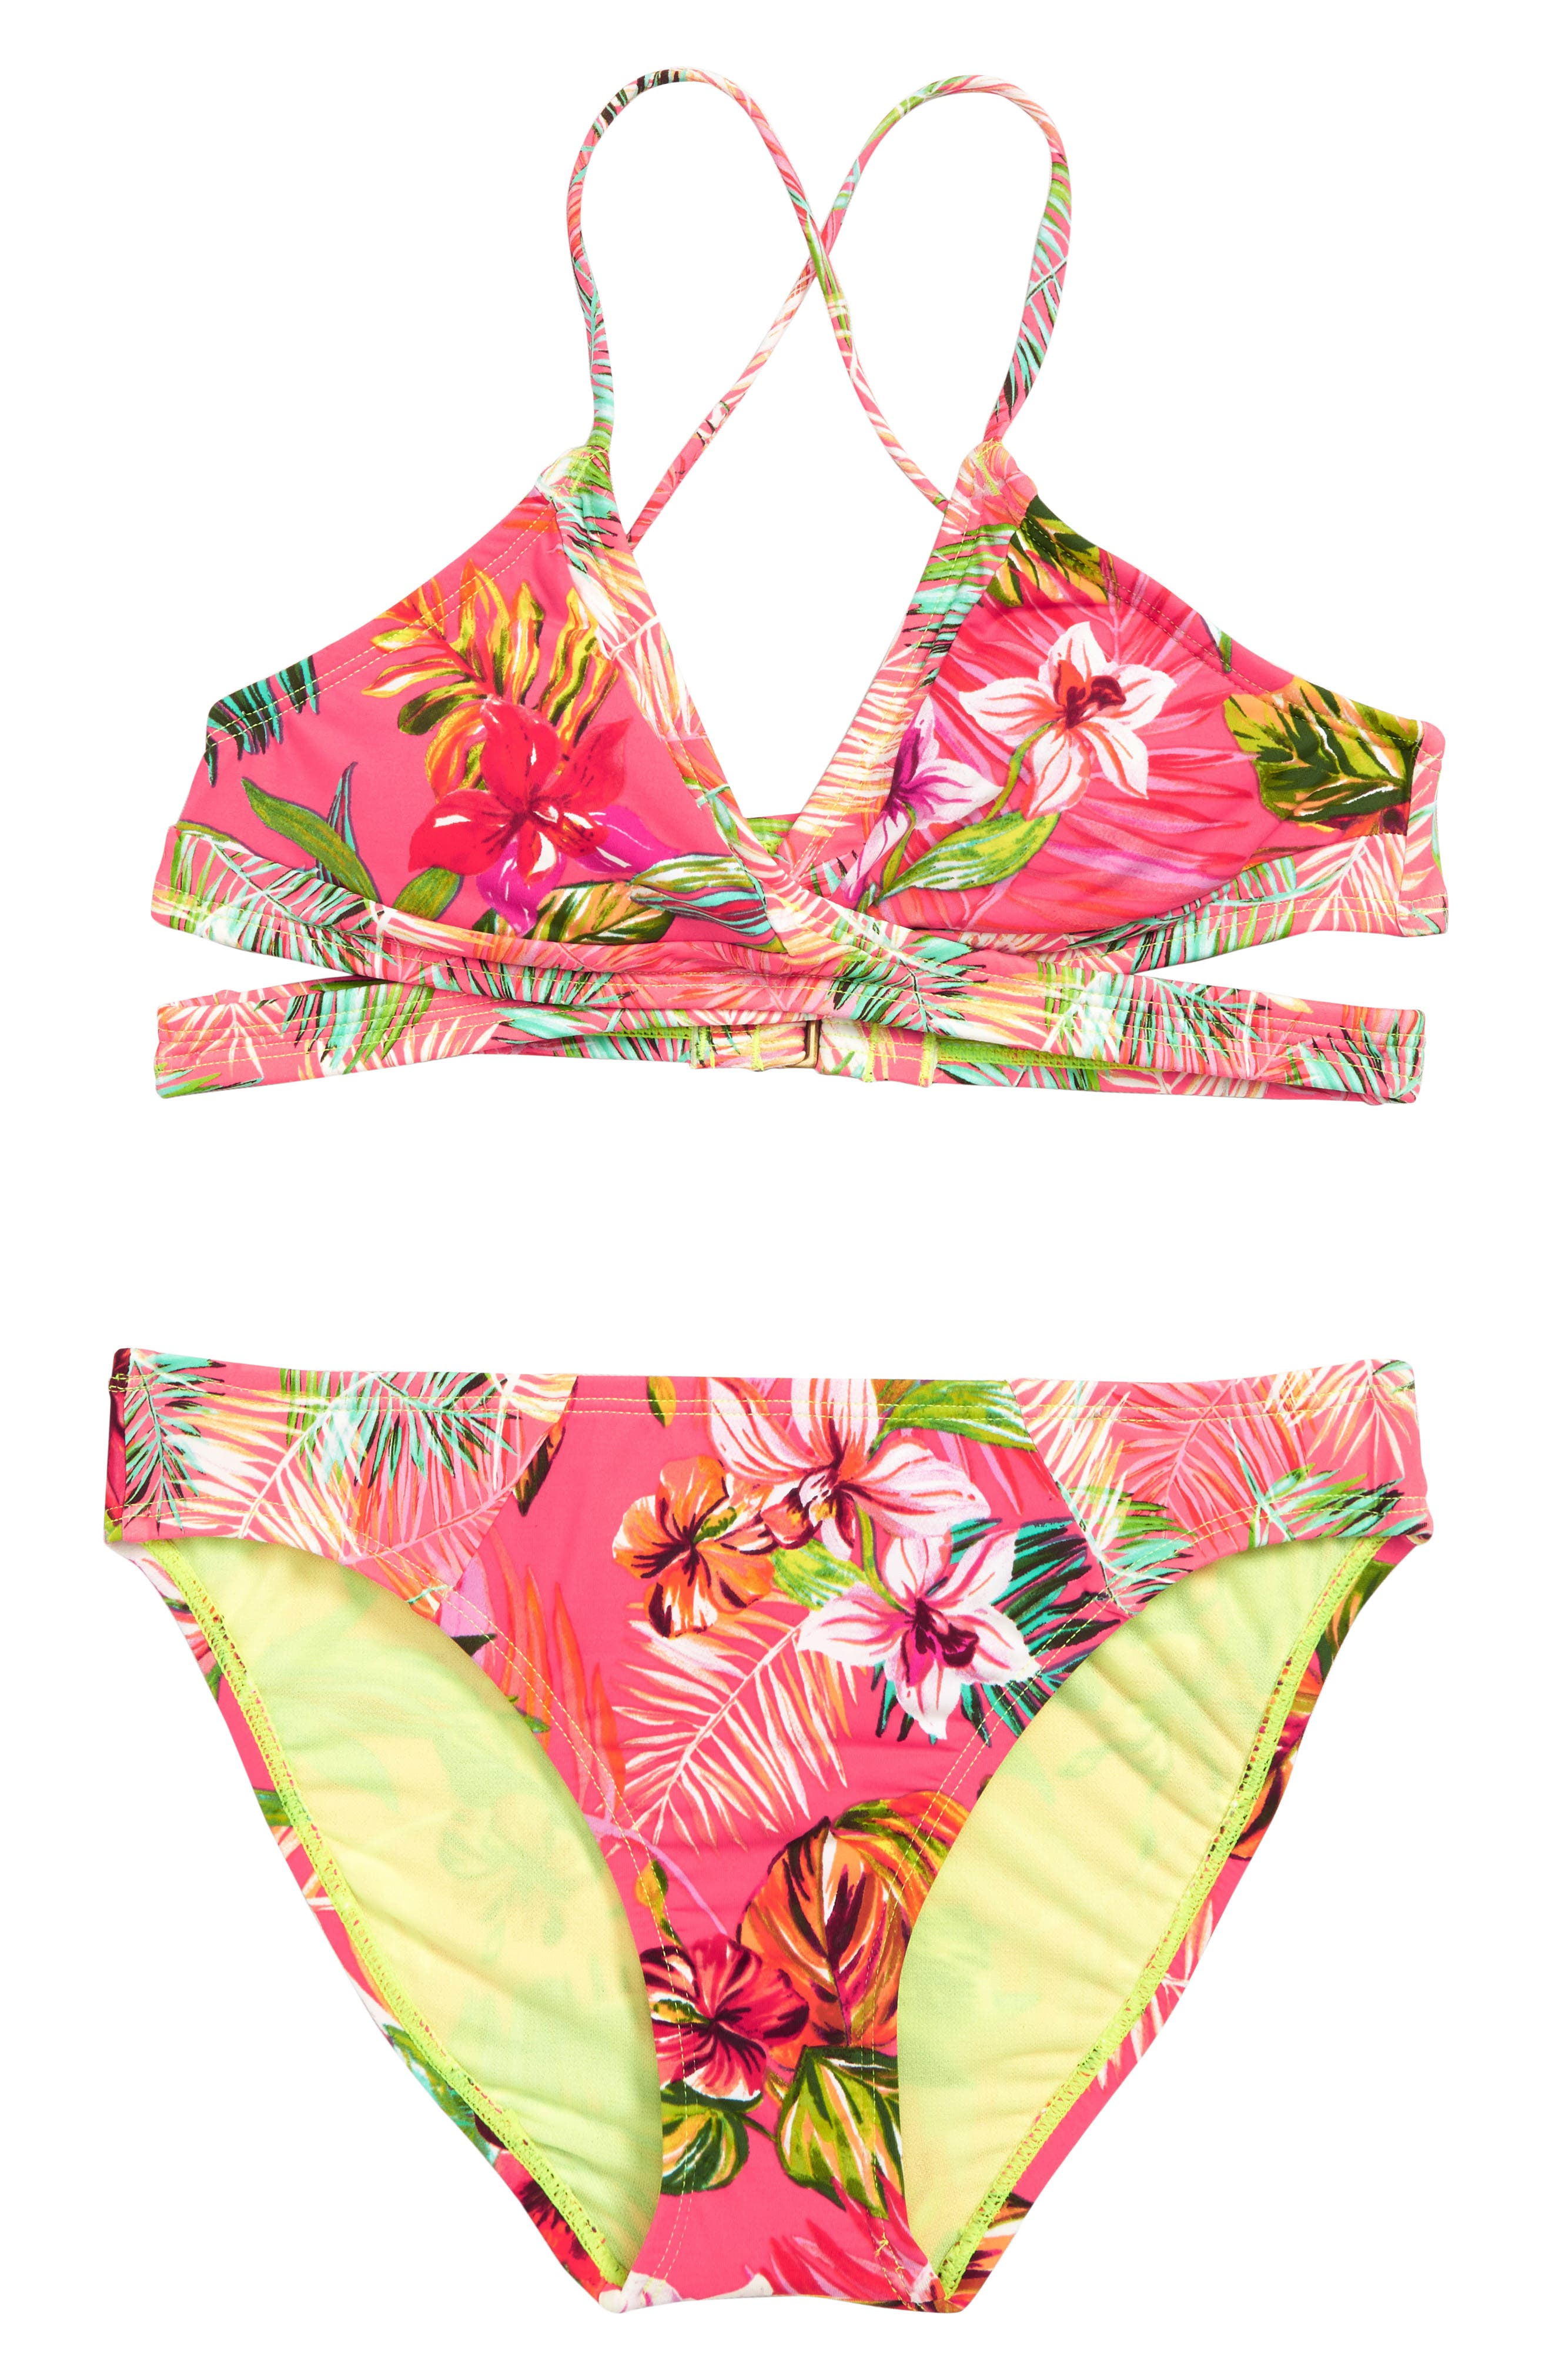 HOBIE, Flor All Nothing Two-Piece Swimsuit, Main thumbnail 1, color, BRIGHT PINK